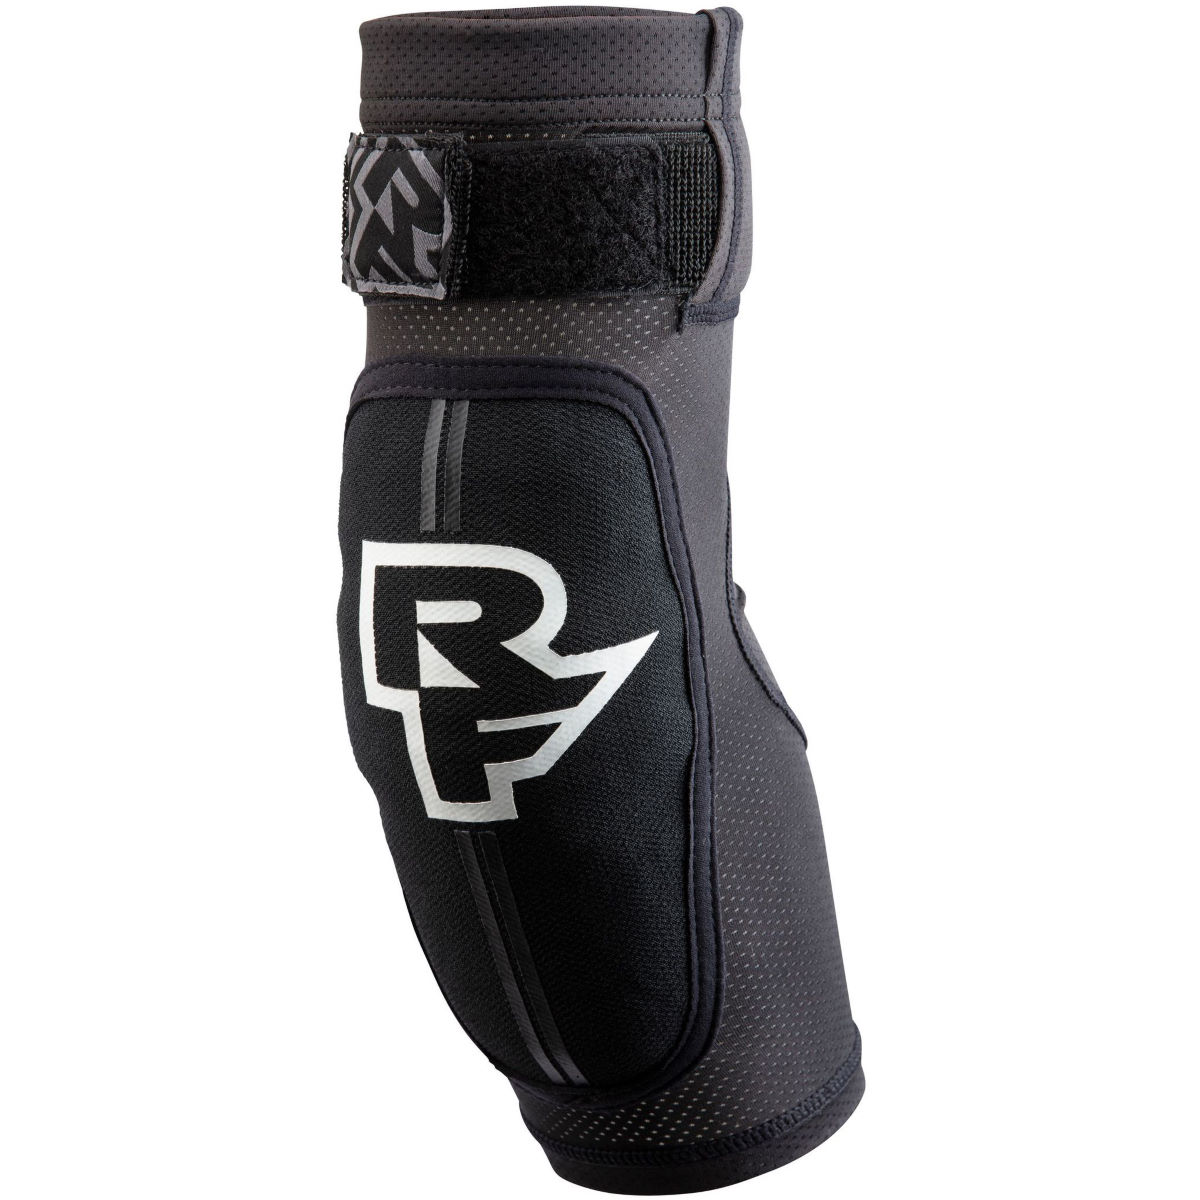 Race Face Indy Elbow Pads - M Stealth  Elbow Pads